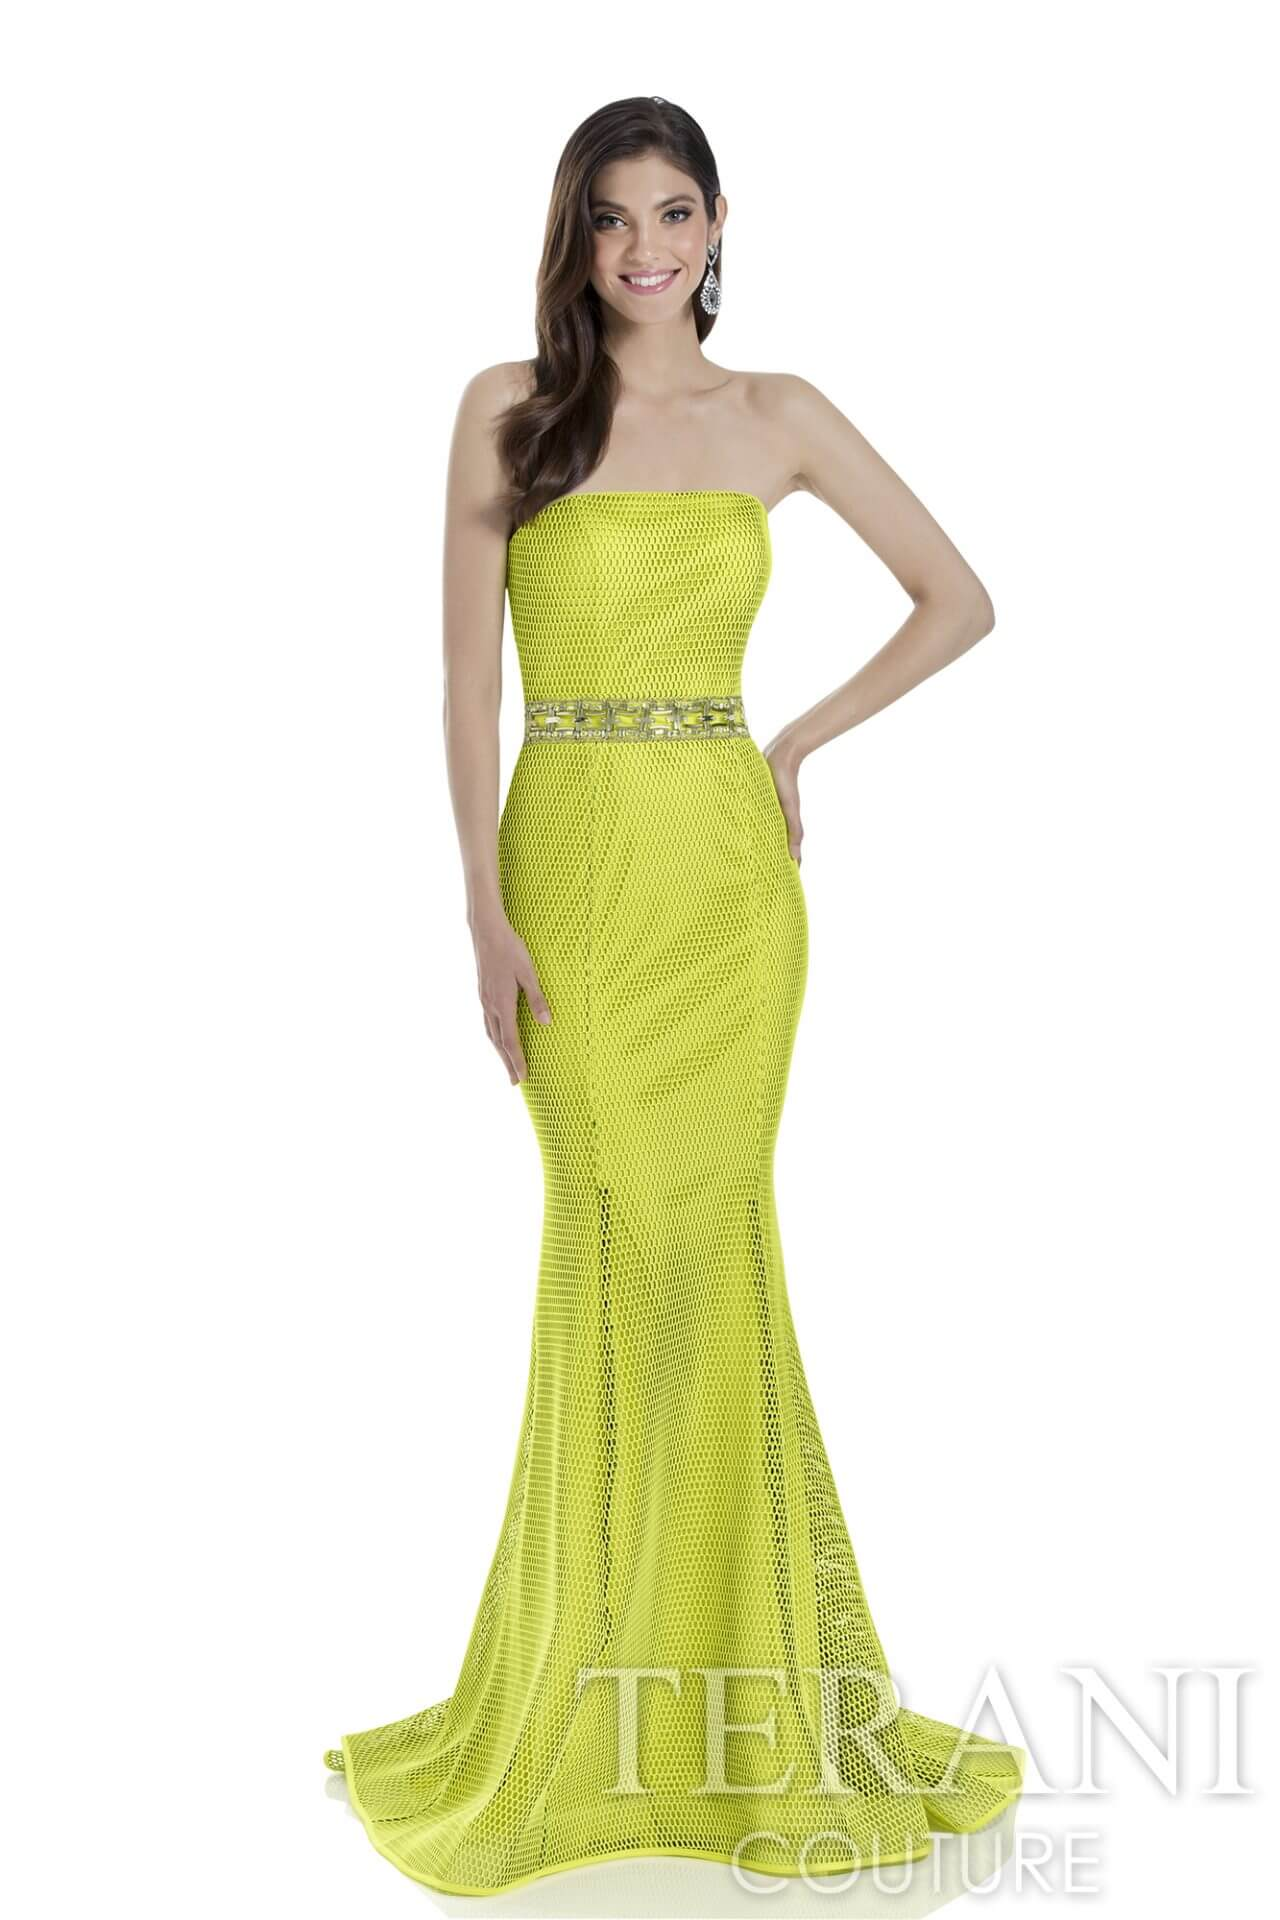 Chartreuse bridesmaid dresses images braidsmaid dress cocktail chartreuse bridesmaid dress vosoi chartreuse bridesmaid dress best ideas dress ombrellifo images ombrellifo Gallery